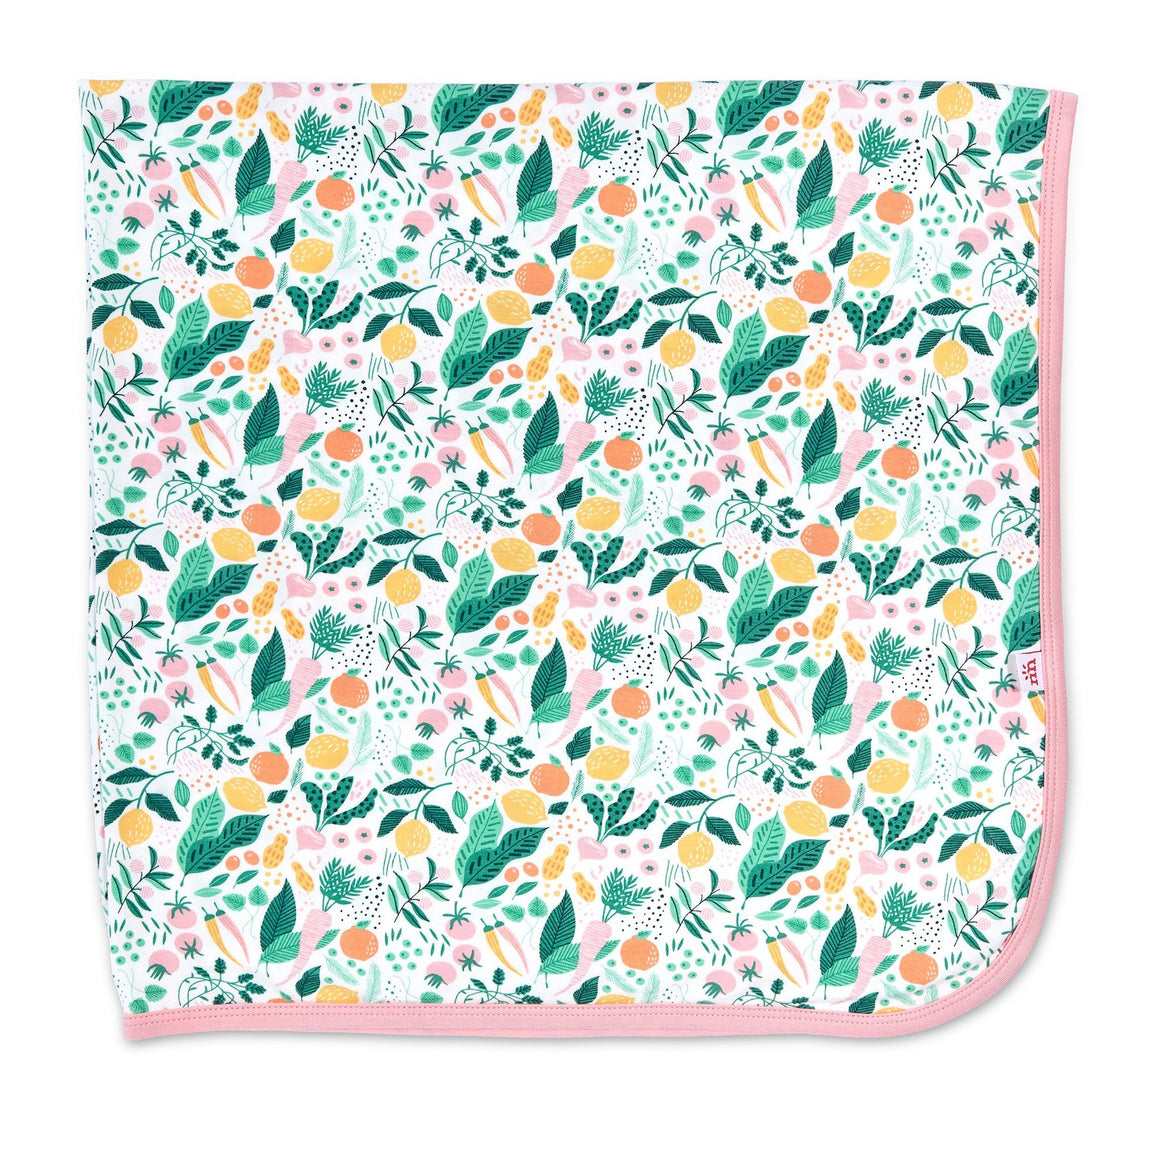 A cheerful fruit and vegetable printed modal swaddle baby blanket in yellow, orange, shades of green and pink.